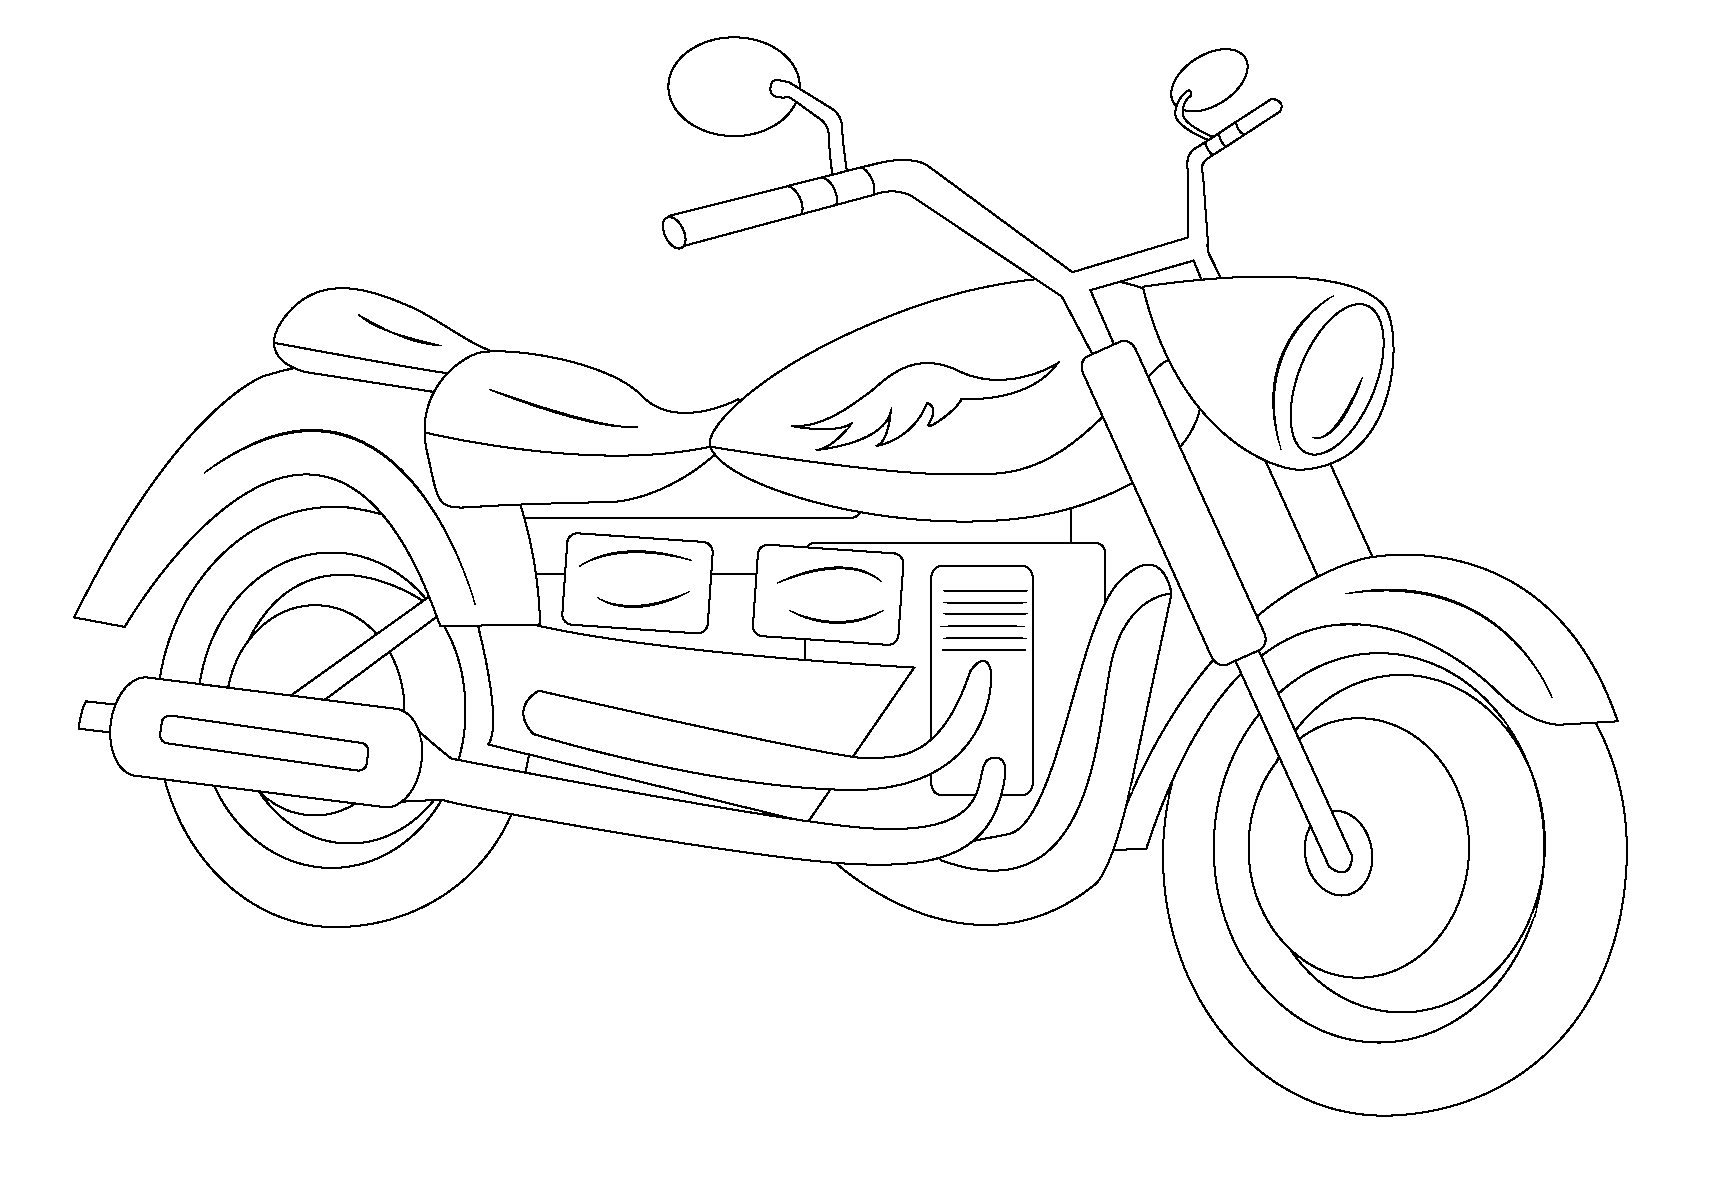 bike coloring pages - photo #20